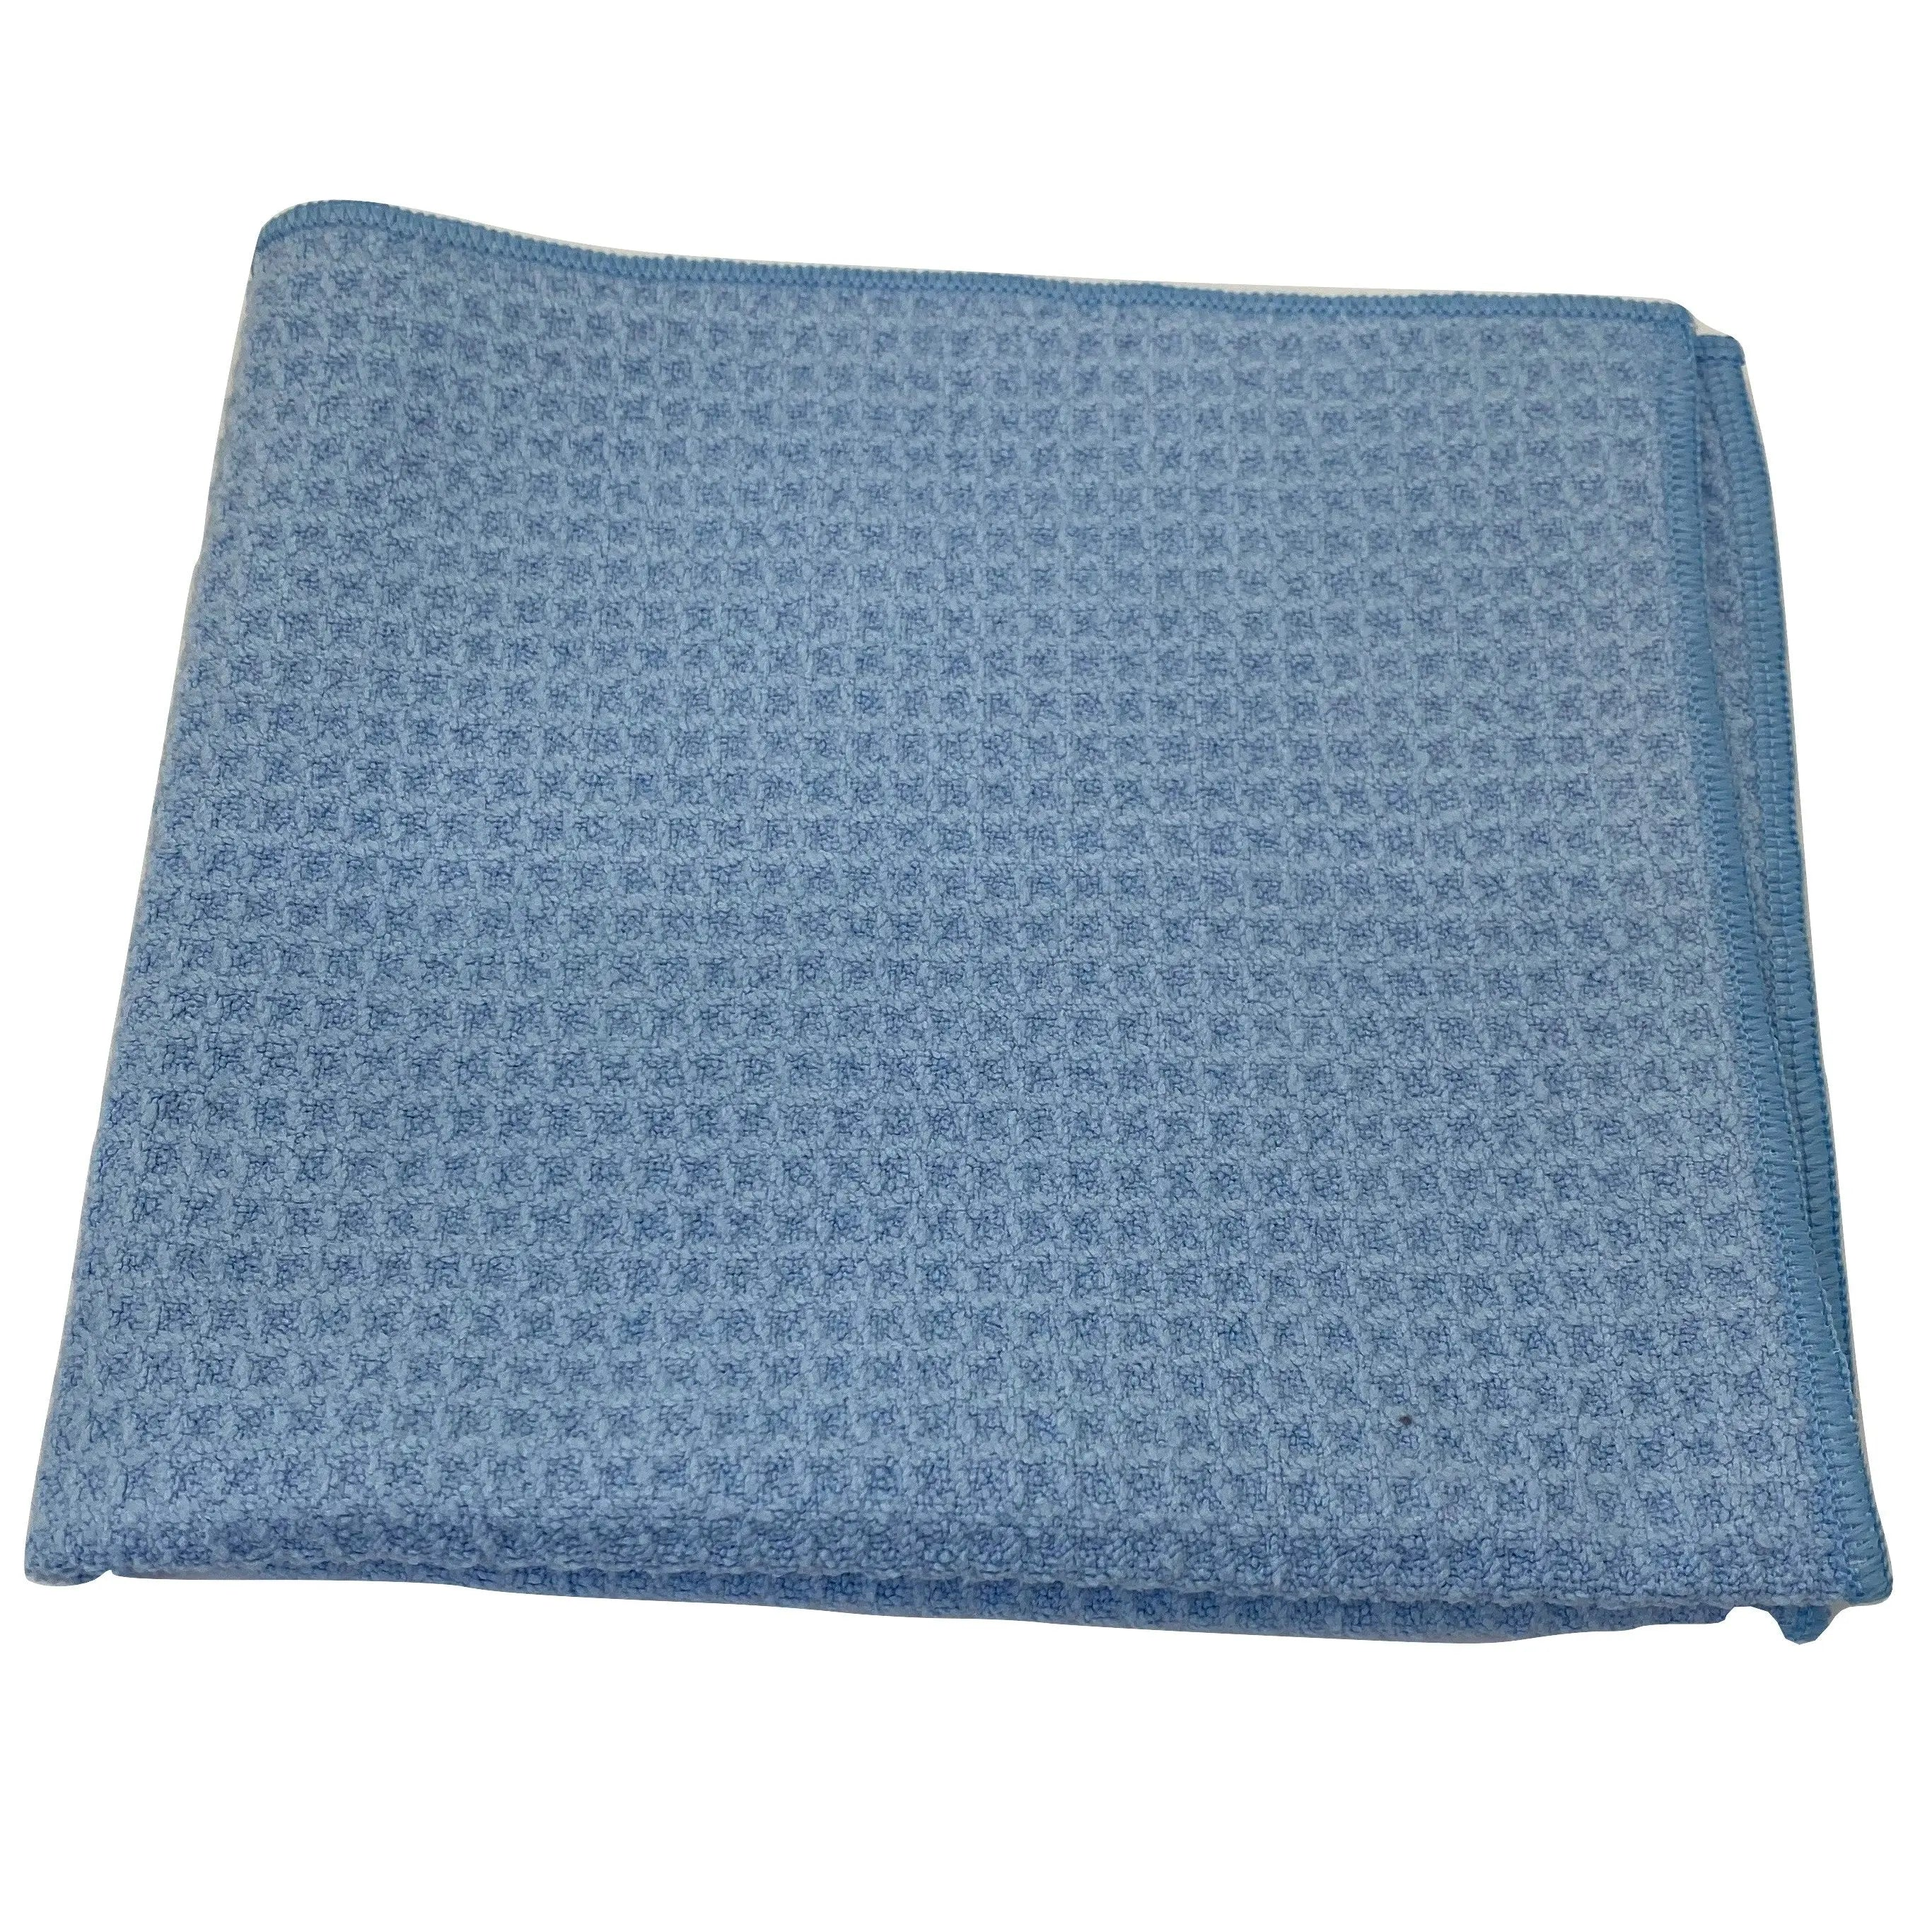 Custom Car Care Microfiber Weave Towels